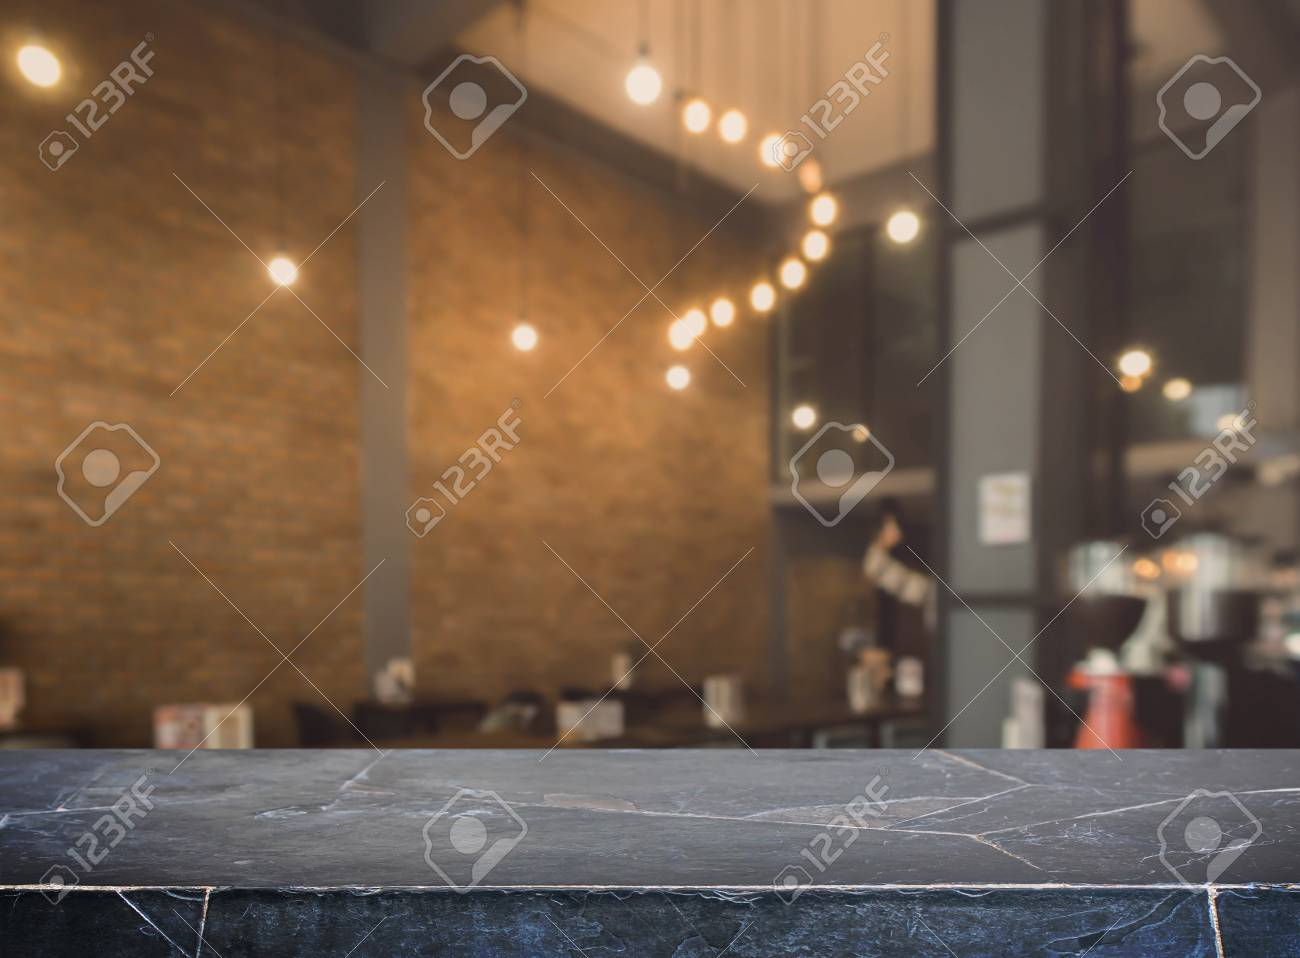 Stock Photo   Stone Marble Table Top And Blurred Bokeh Cafe And Coffee Shop  Interior Background With Vintage Filter   Can Used For Display Or Montage  Your ...